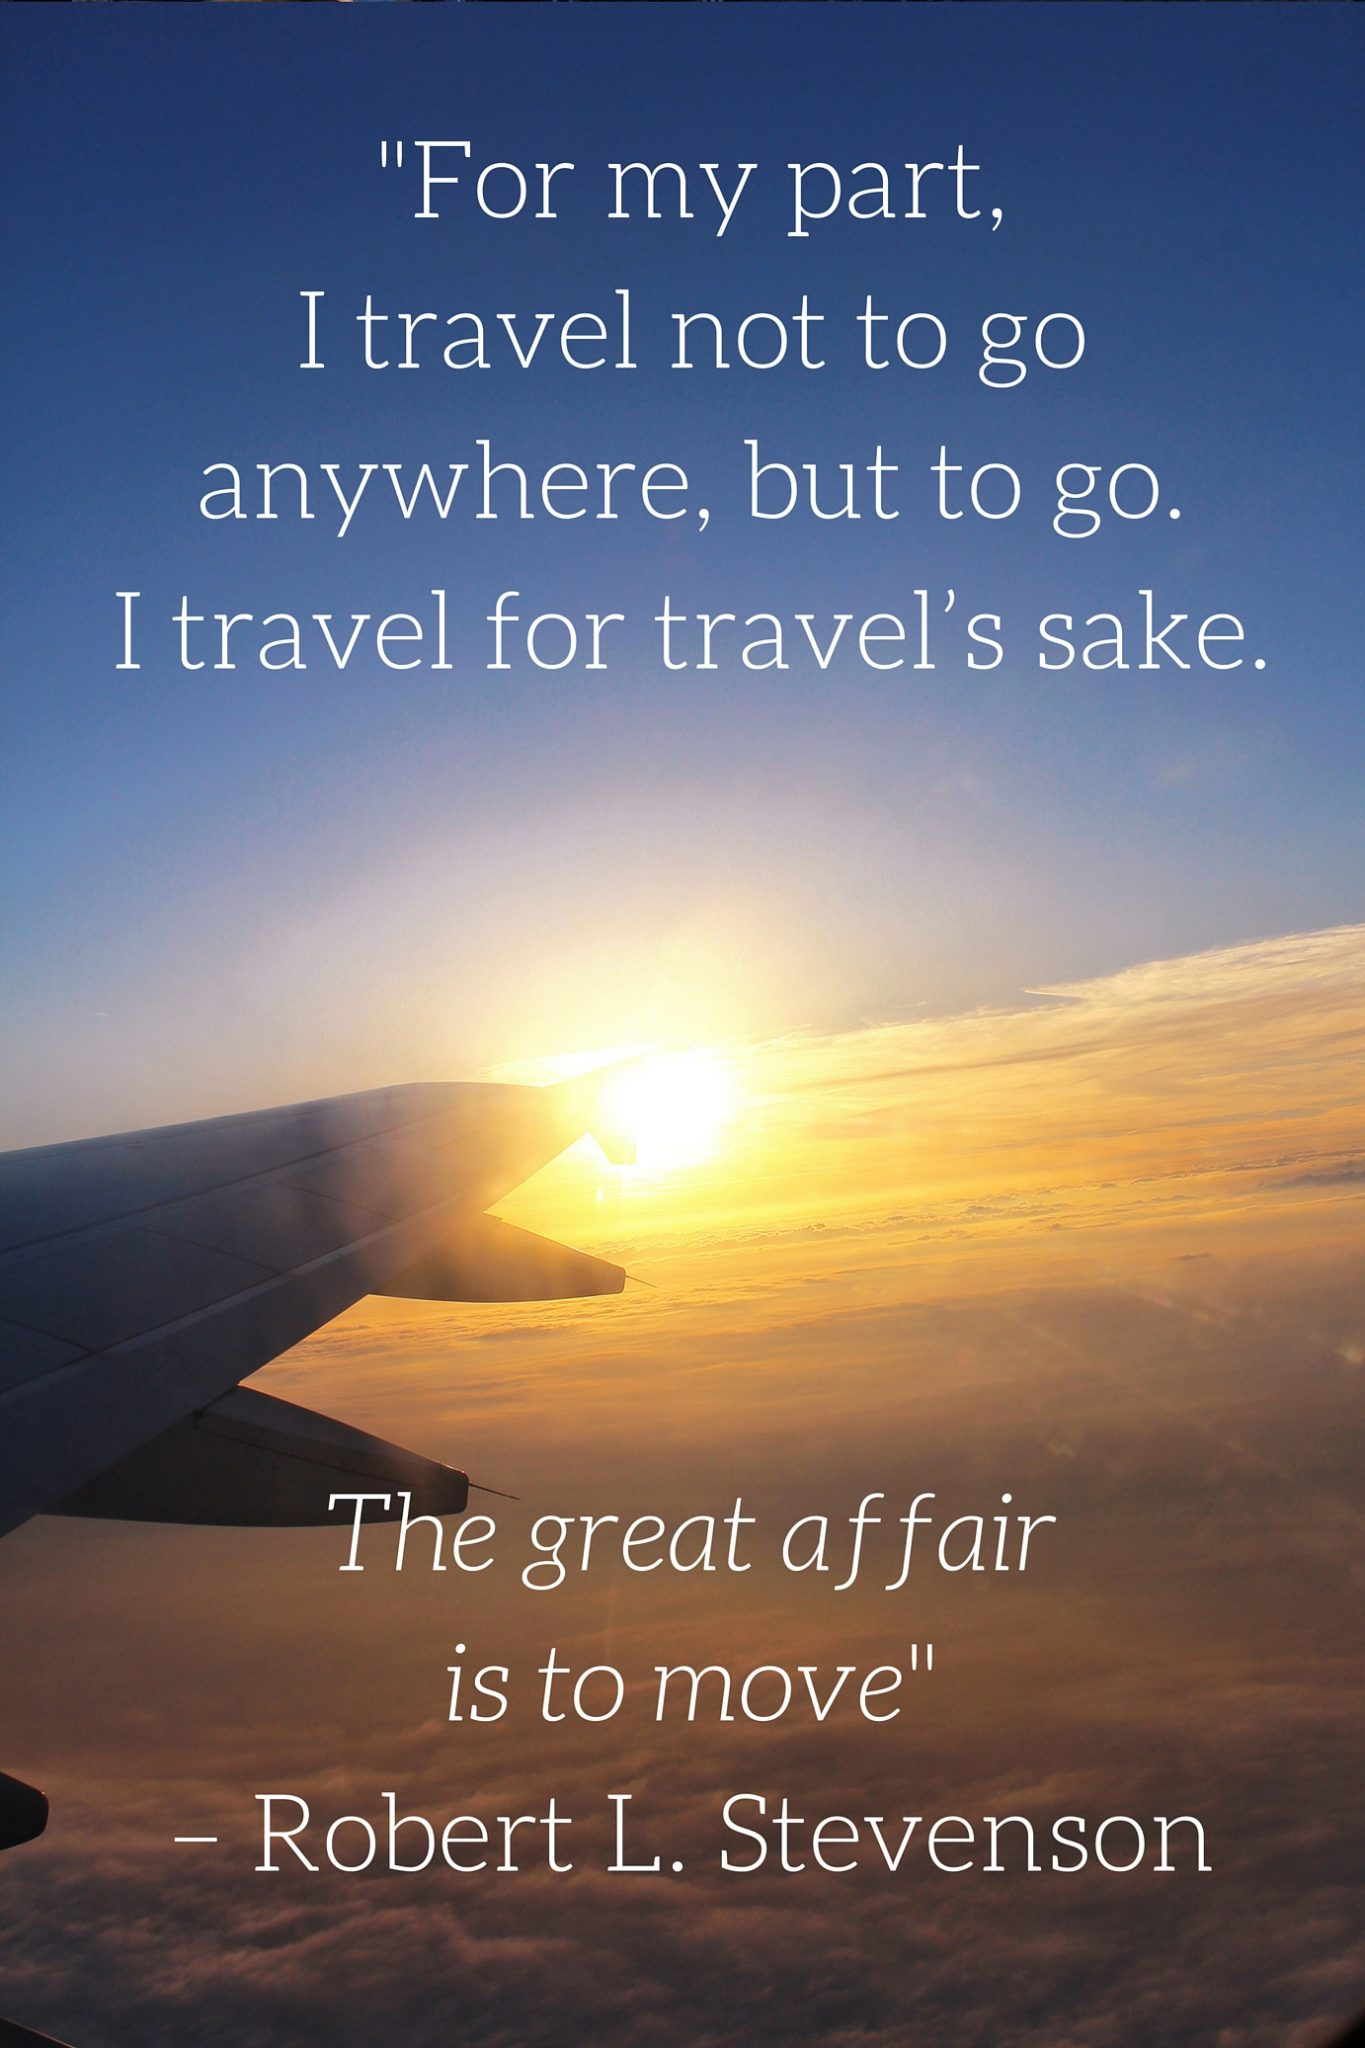 50 Inspiring Travel Quote Pictures: 12 Travel Quotes That Will Inspire You To Travel More